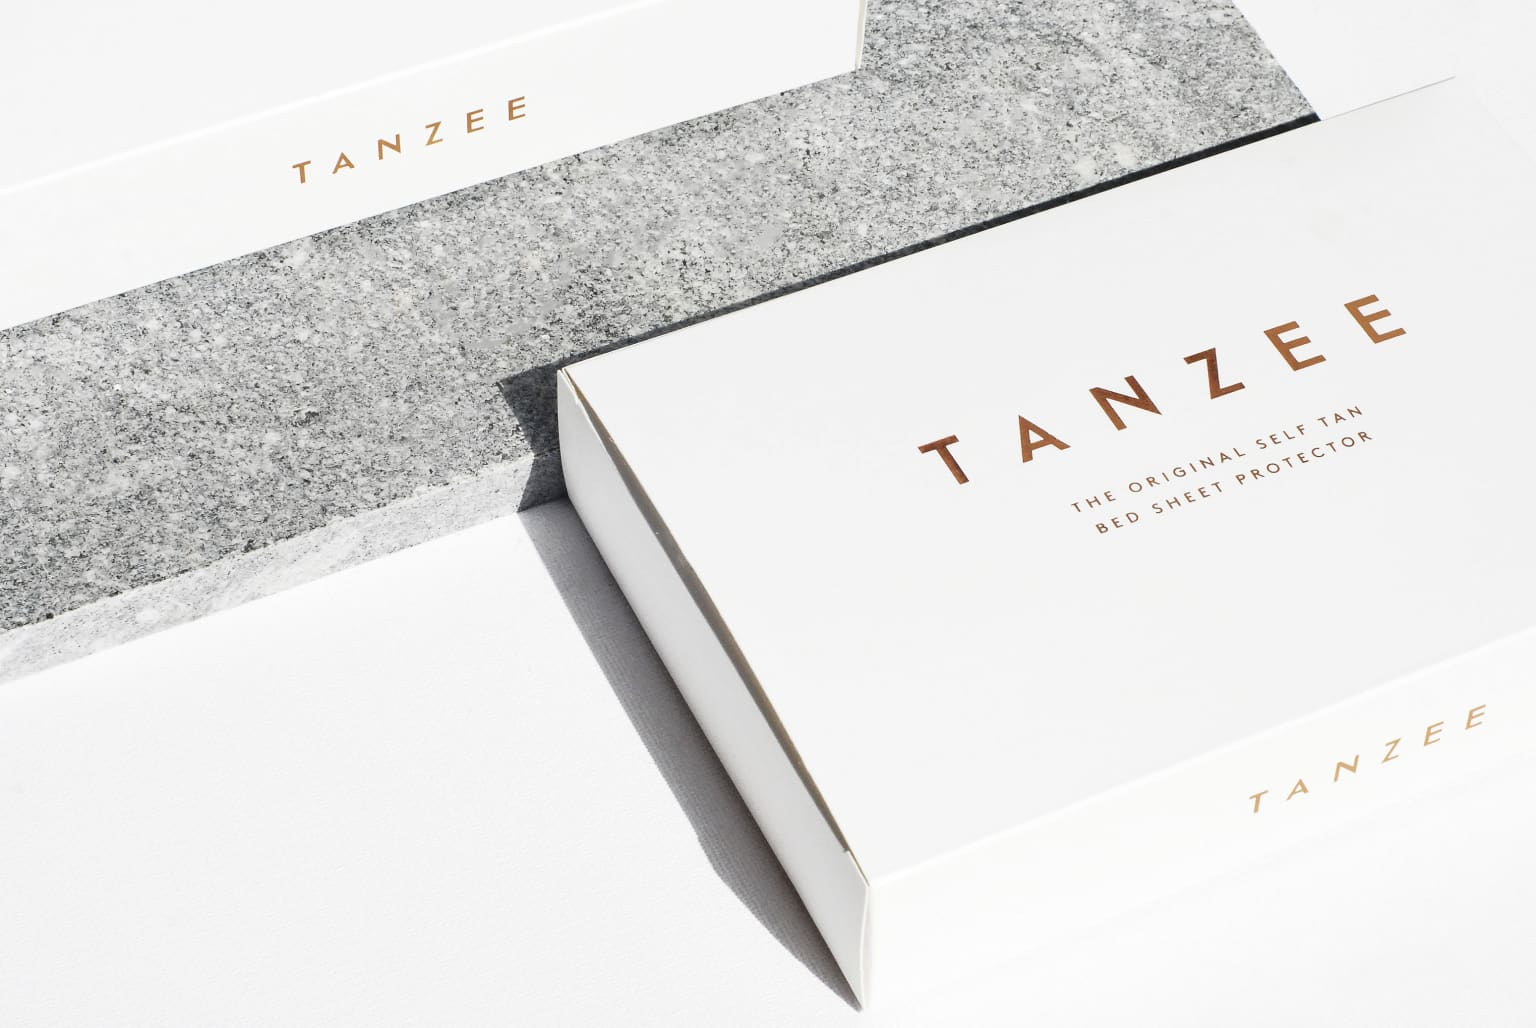 Tanzee Brand & Packaging